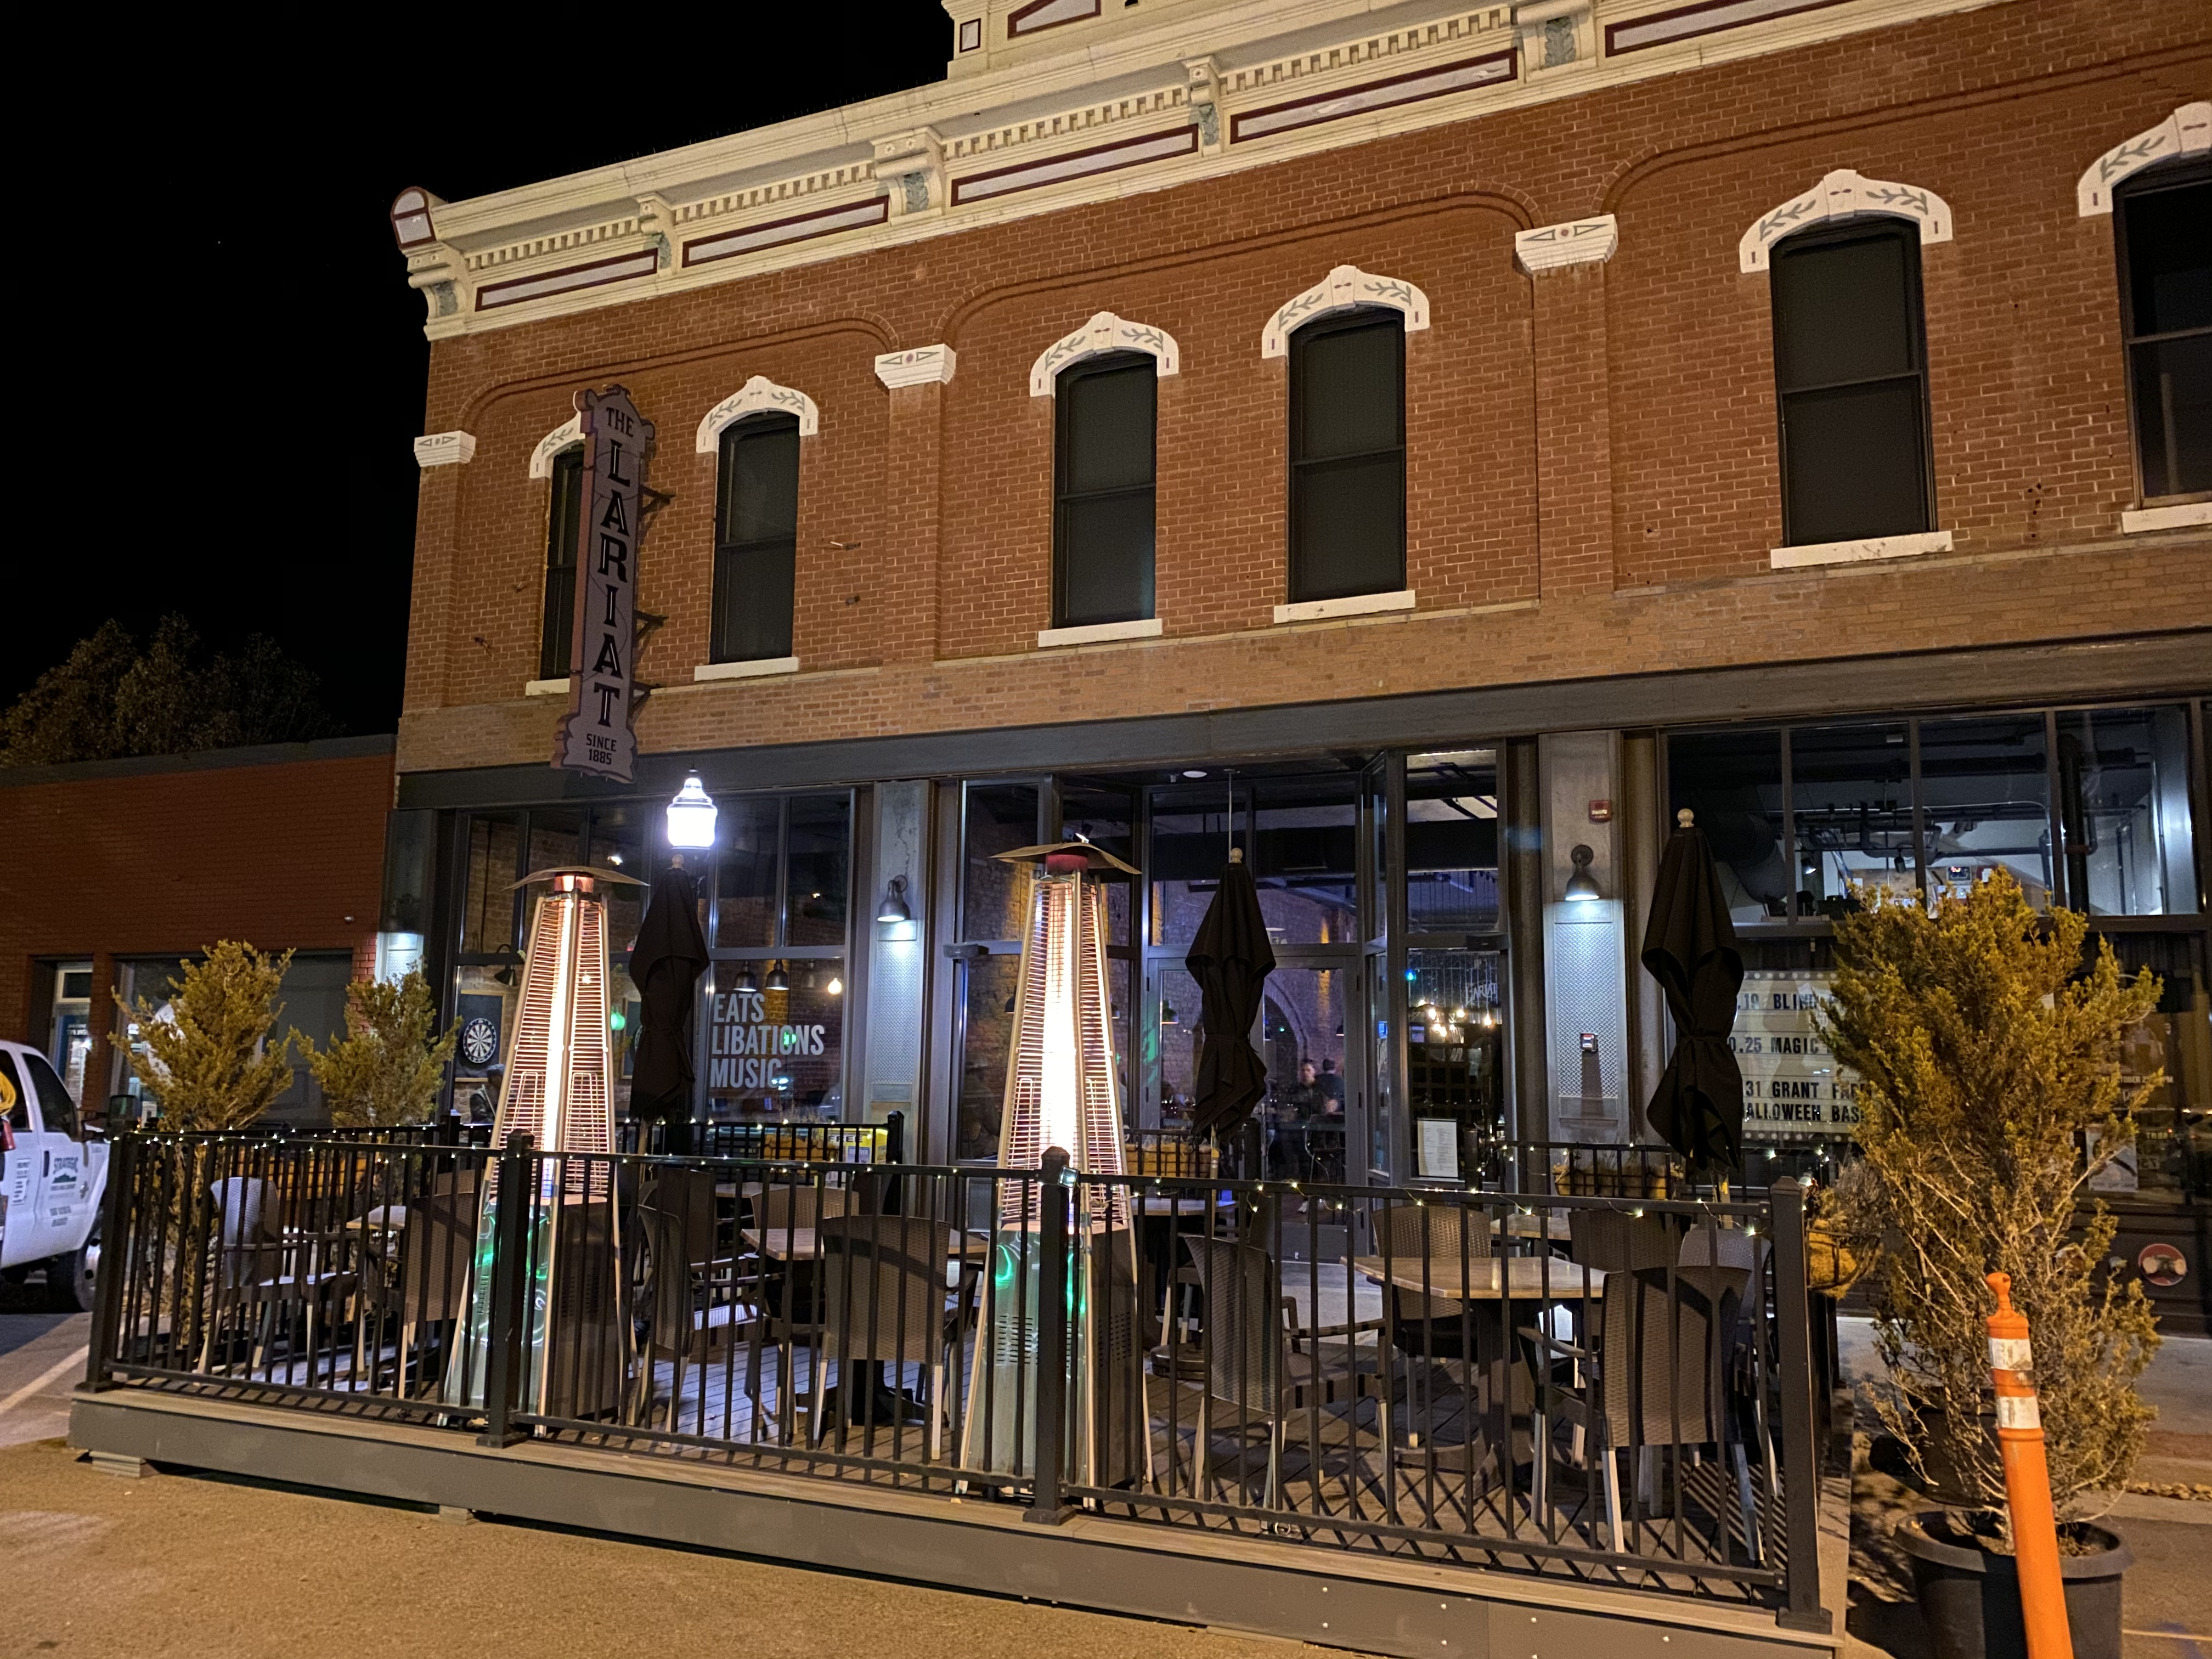 My dinner venue, The Lariat, in downtown Buena Vista, CO.